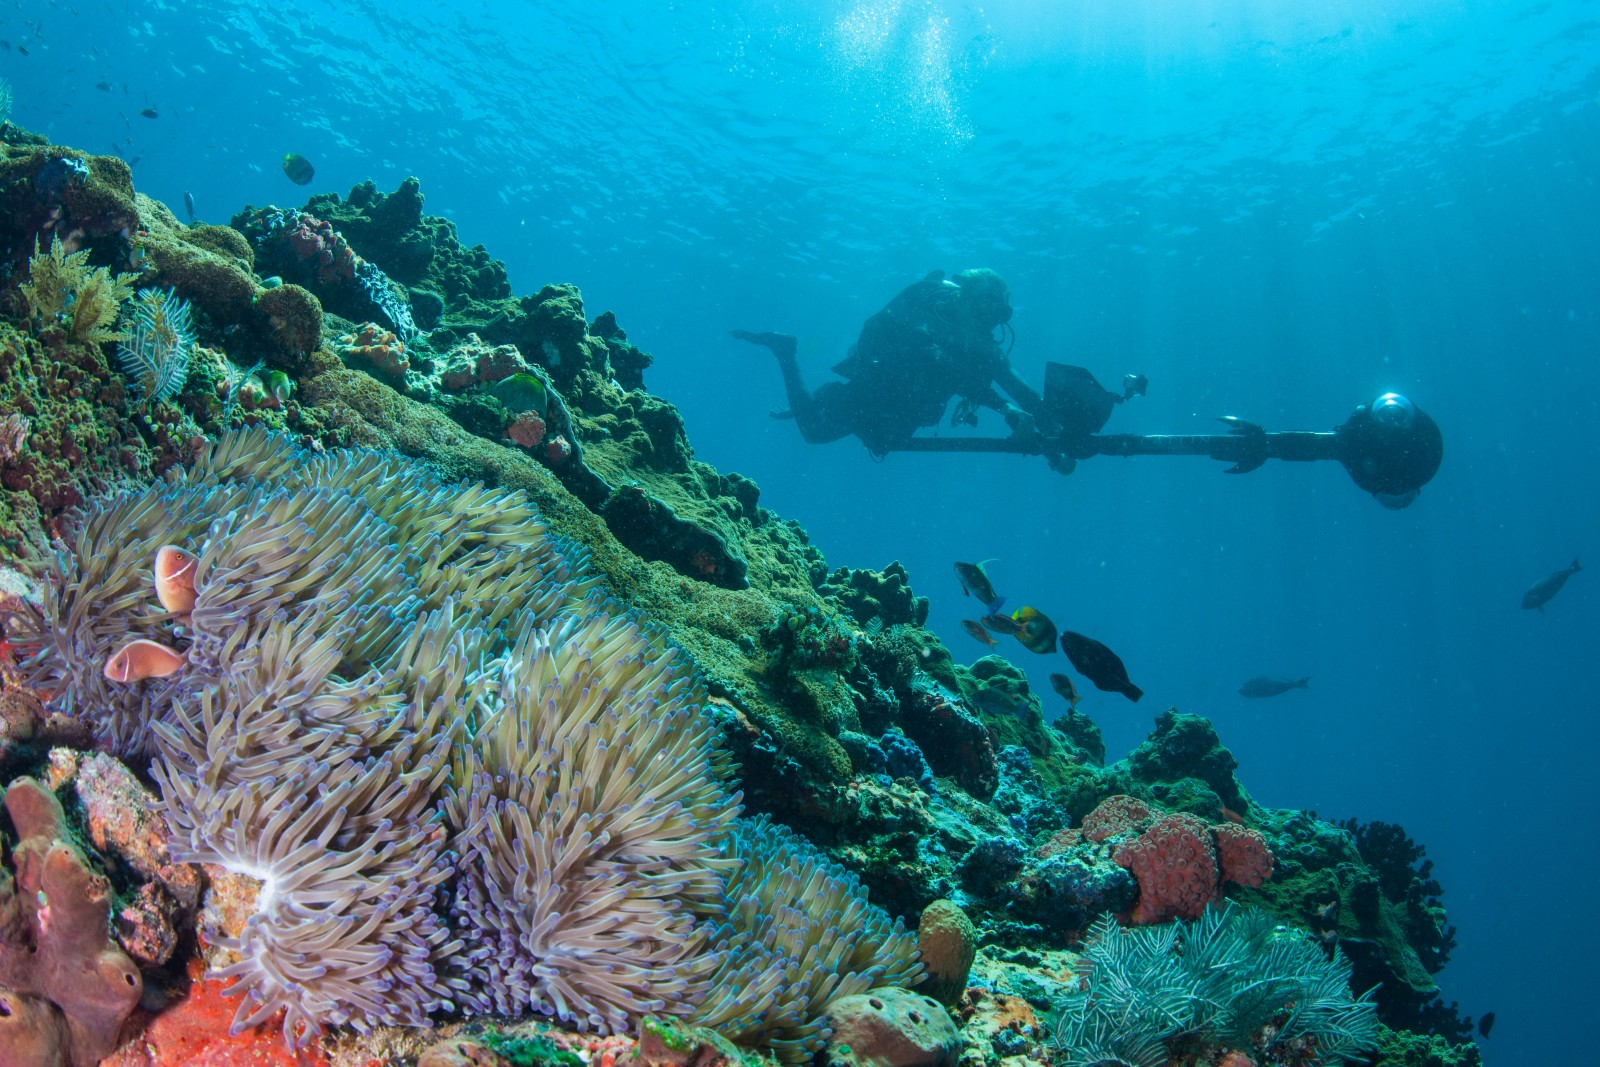 Catlin Seaview Survey using 360 degree camera tech to map the reefs of Komodo National Park